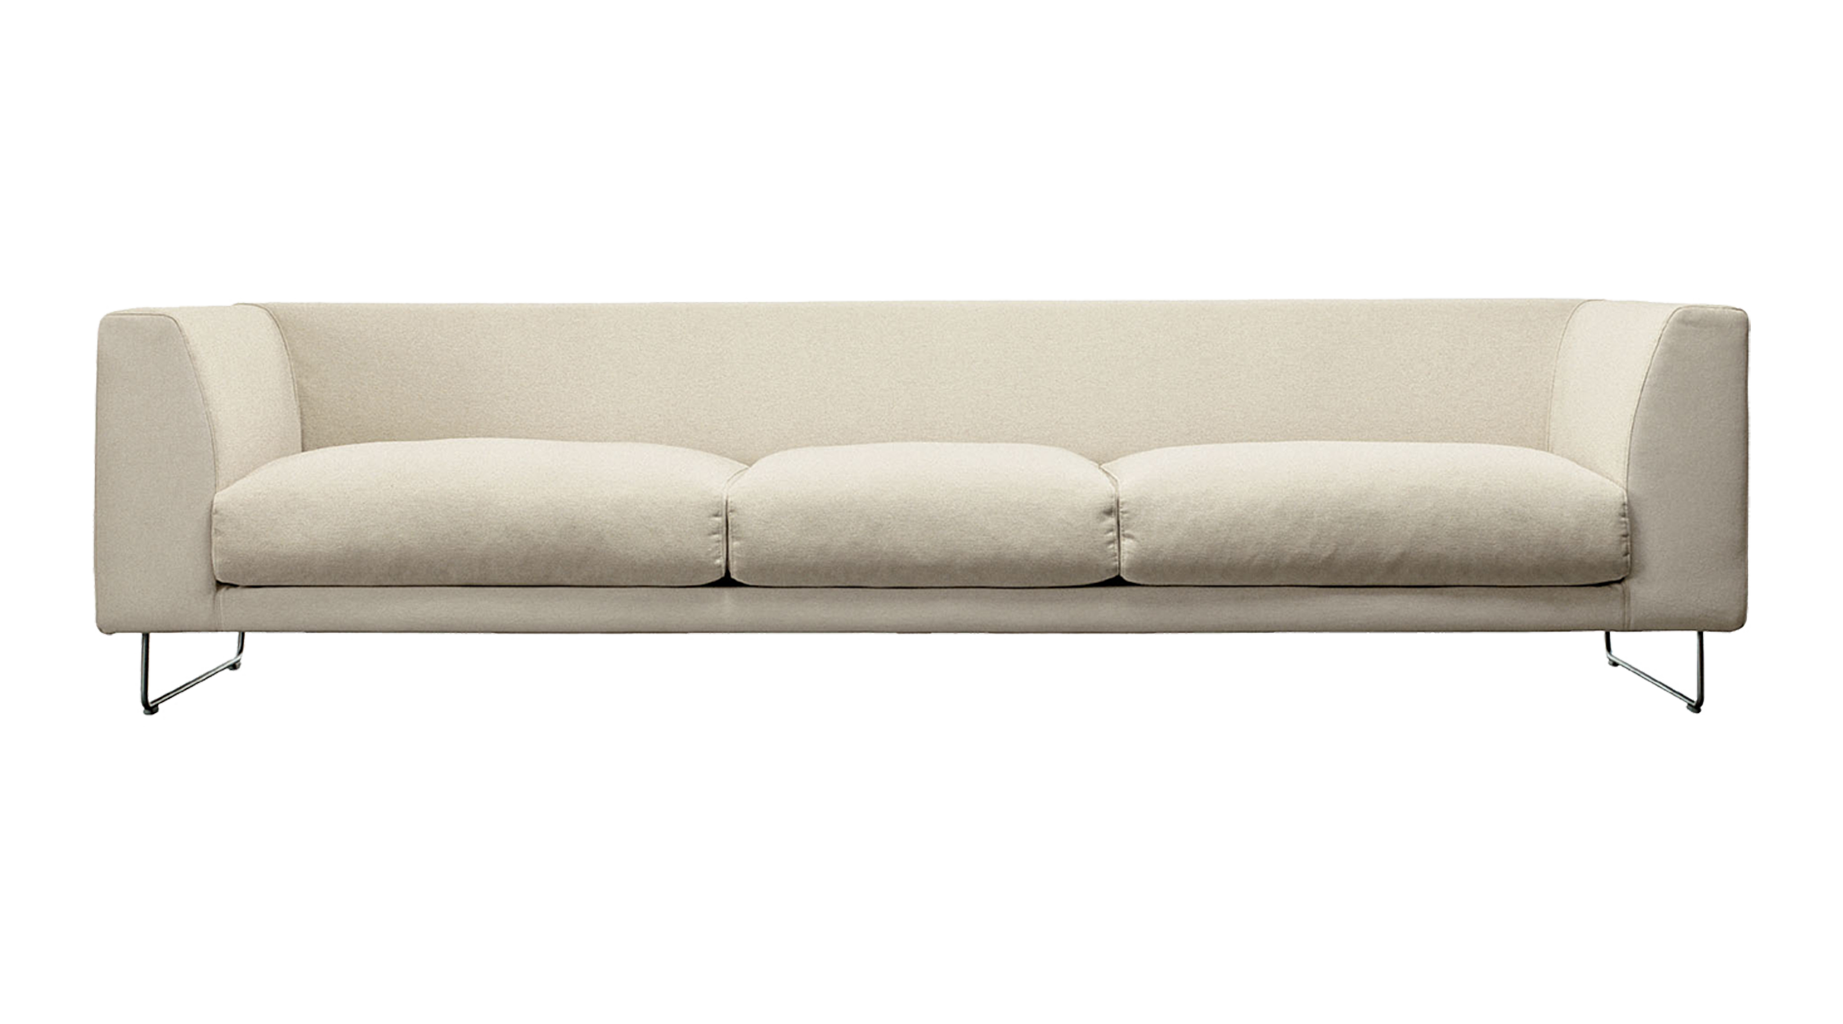 modern furniture chairs png sofa png images free 491